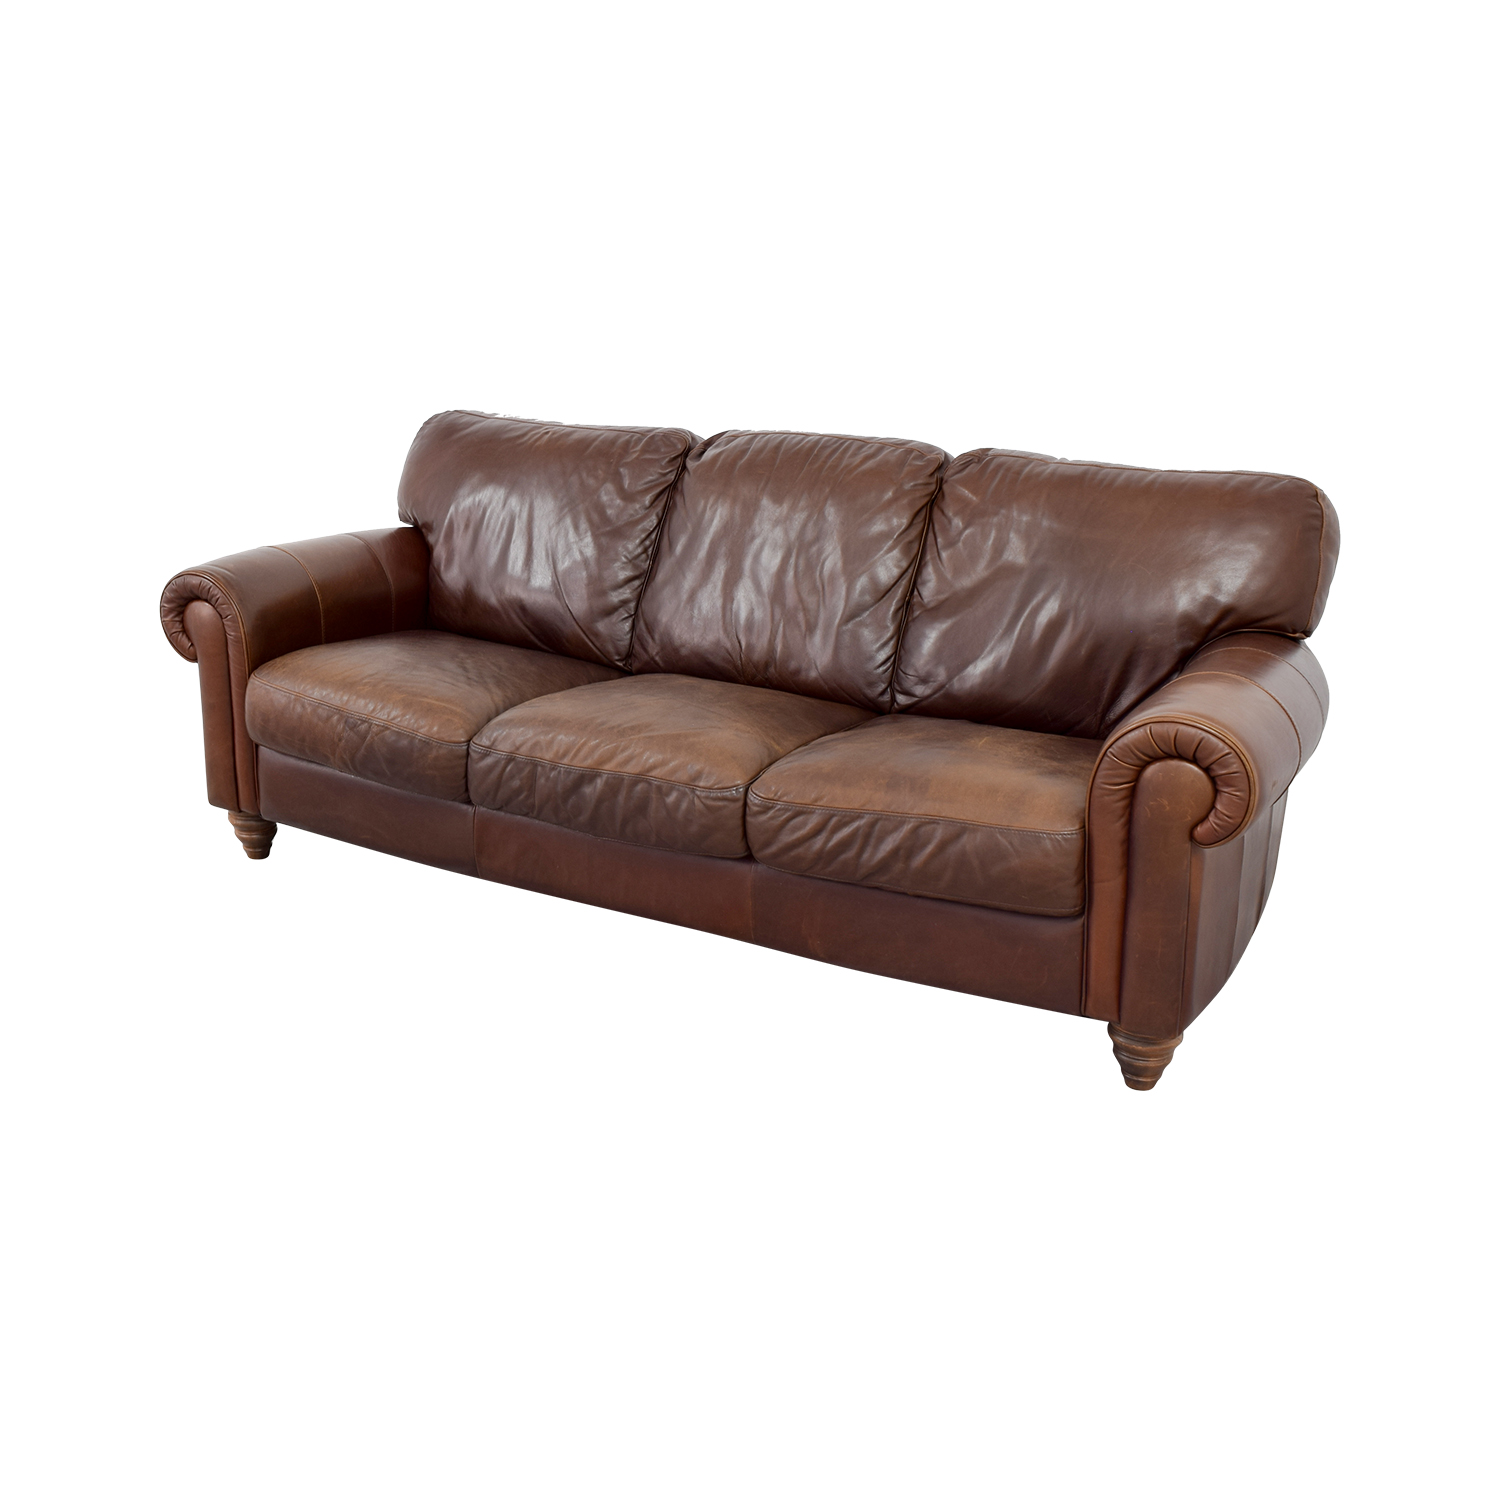 Cushions For Brown Leather Sofas 90 Off Brown Three Cushion Leather Couch Sofas